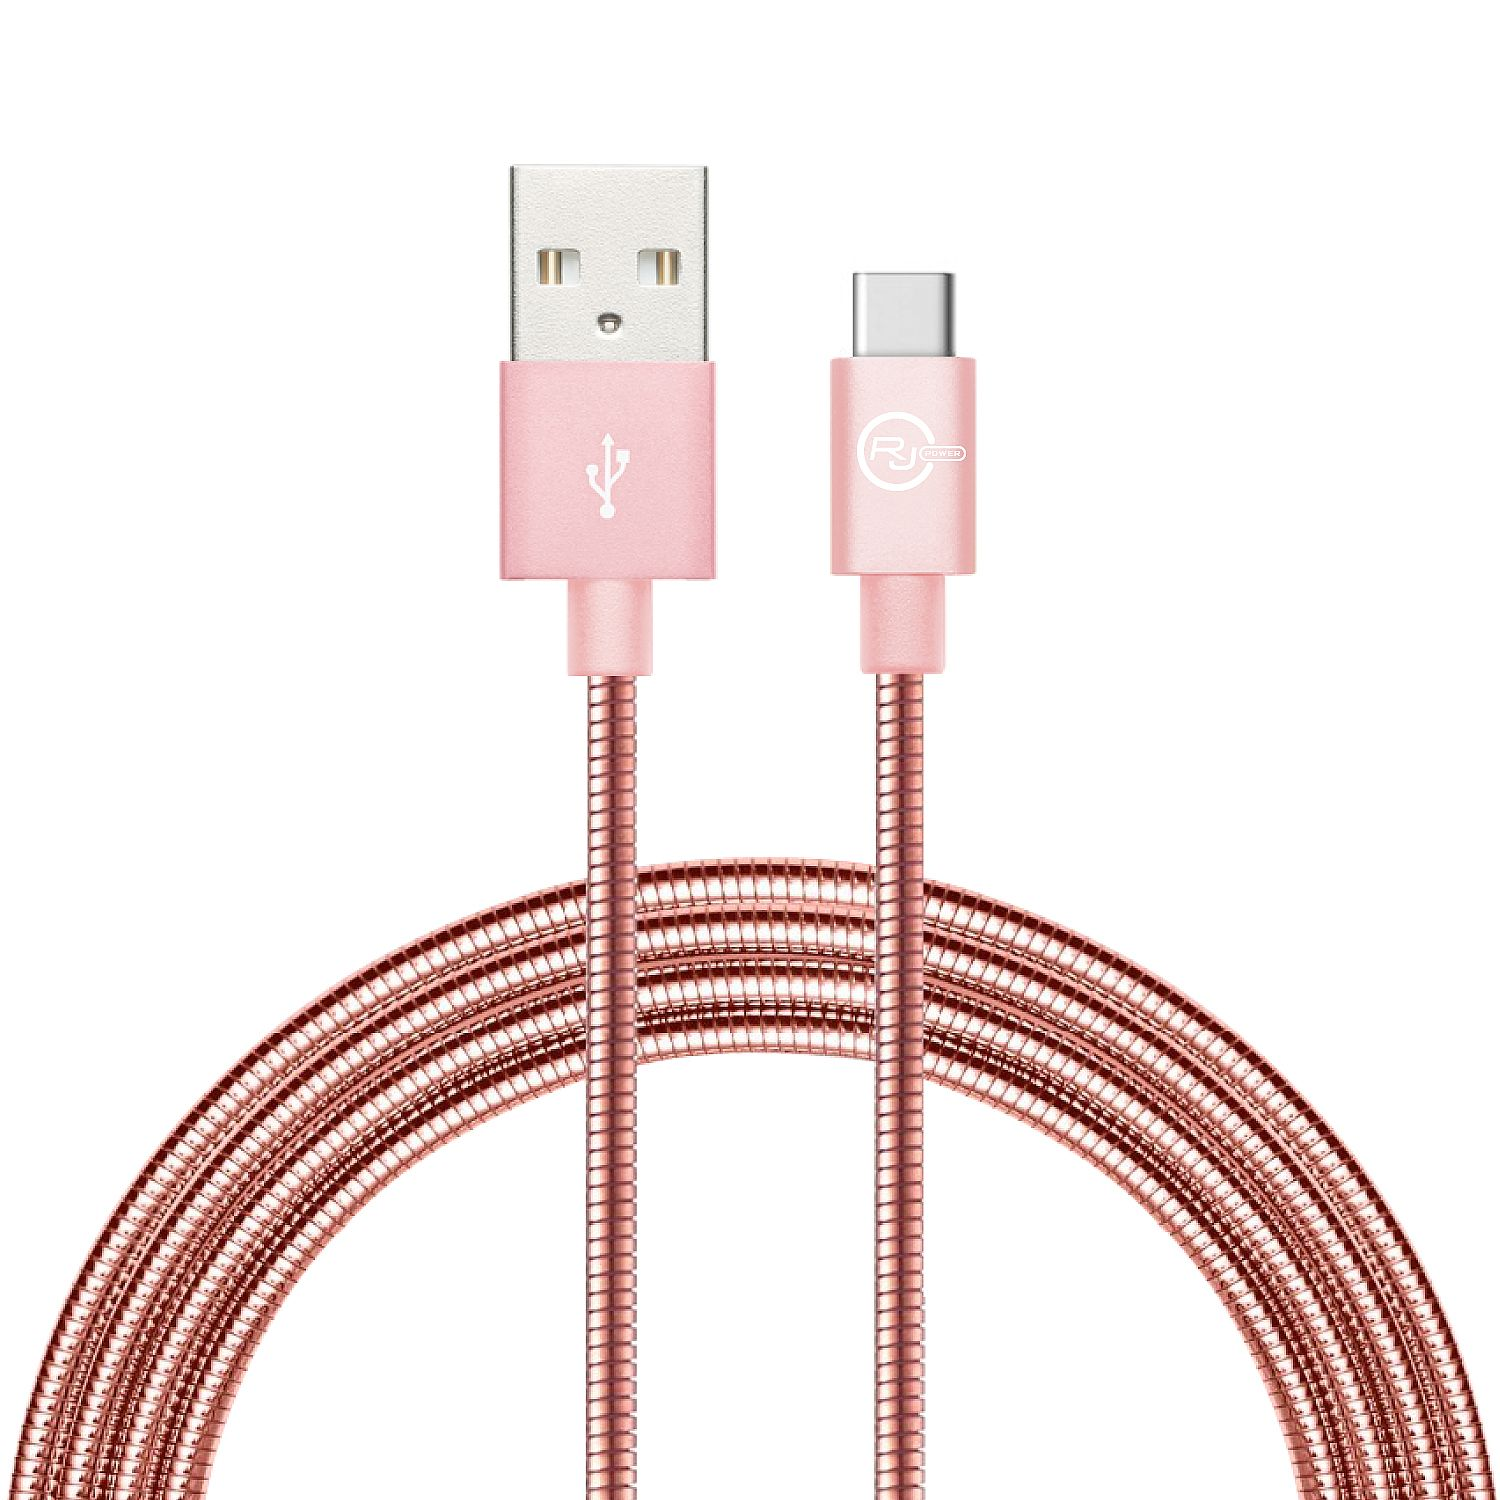 RJ Power Premium Metallic Sync/Charge Cable with Type C connector, 3 Ft- Rose Gold